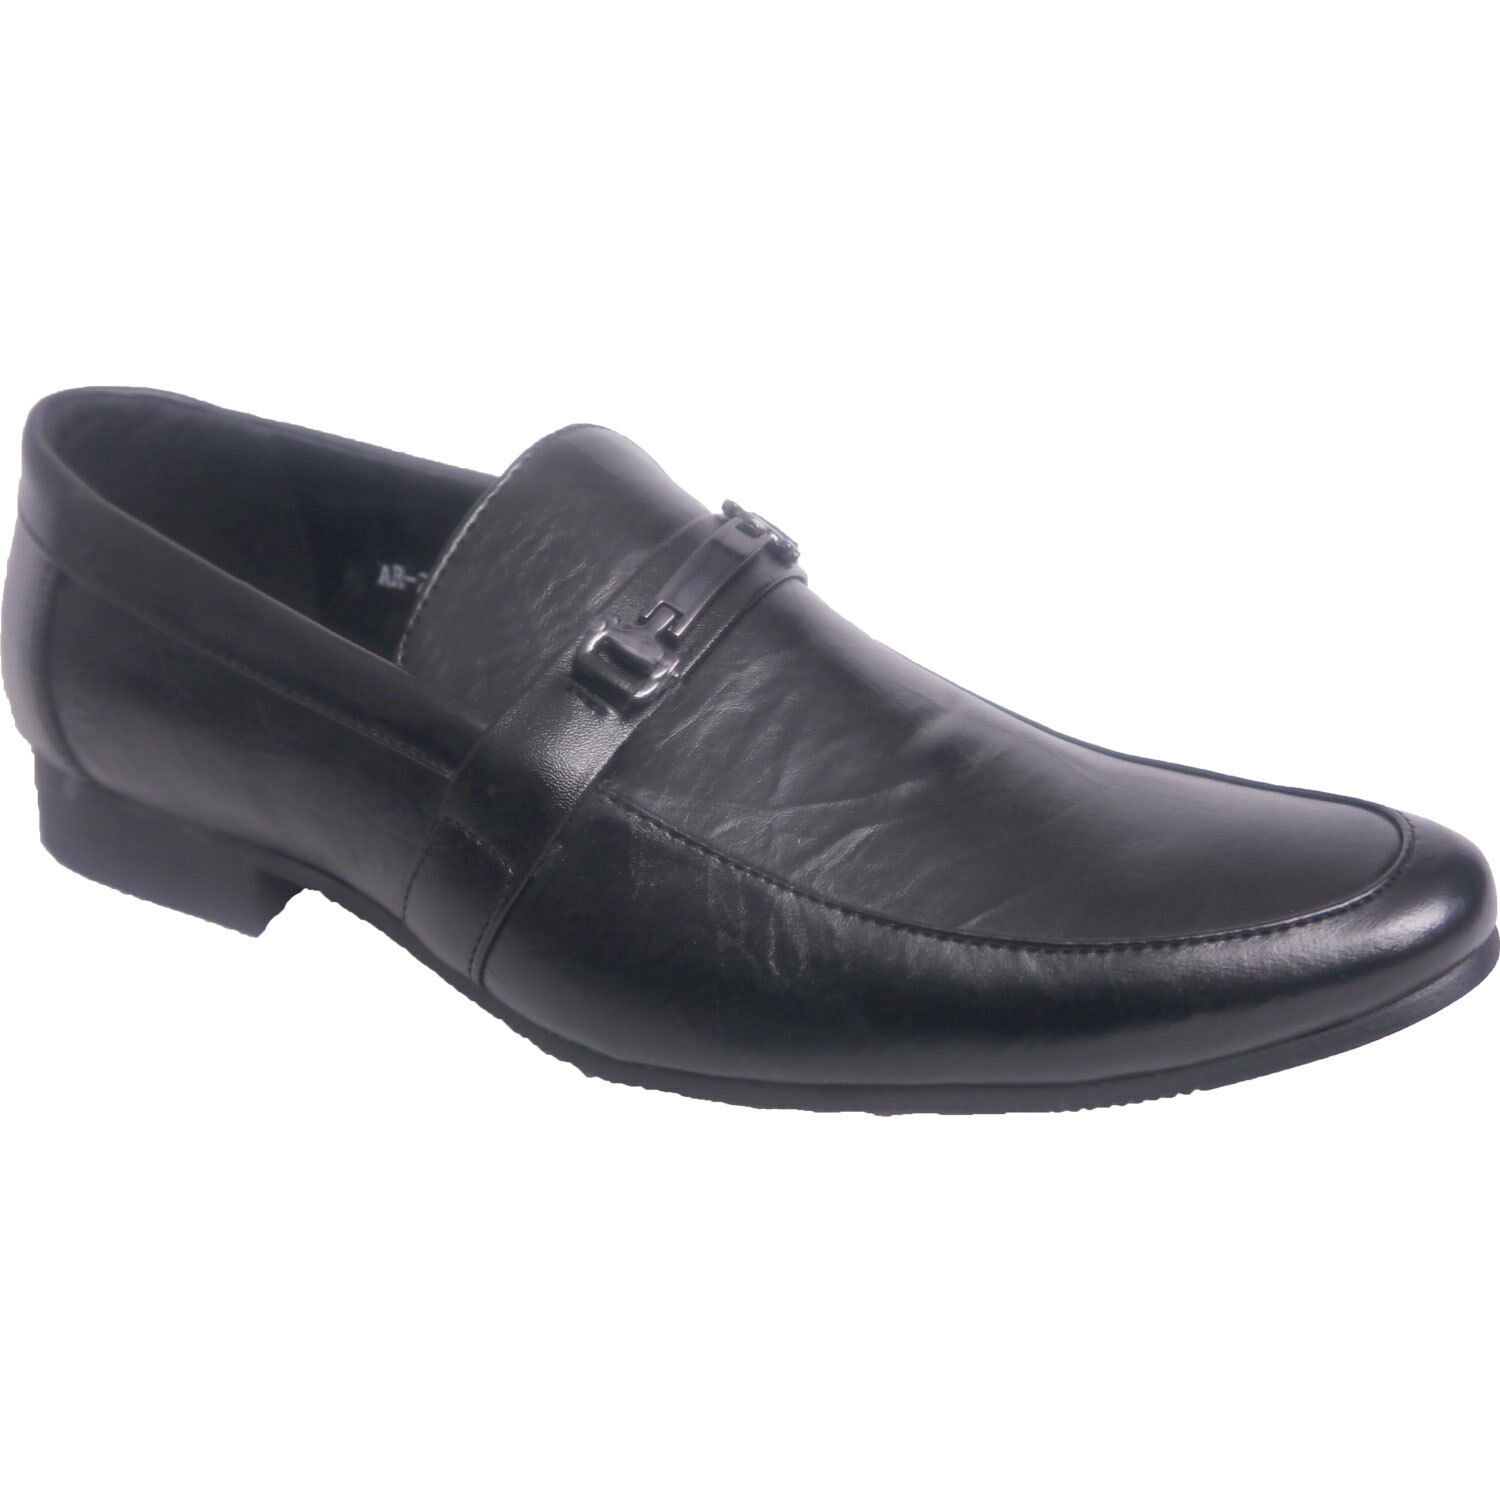 Mens Boys Synthetic Leather Slip Ons Black Wedding Party Formal Shoes Black Ons b74050